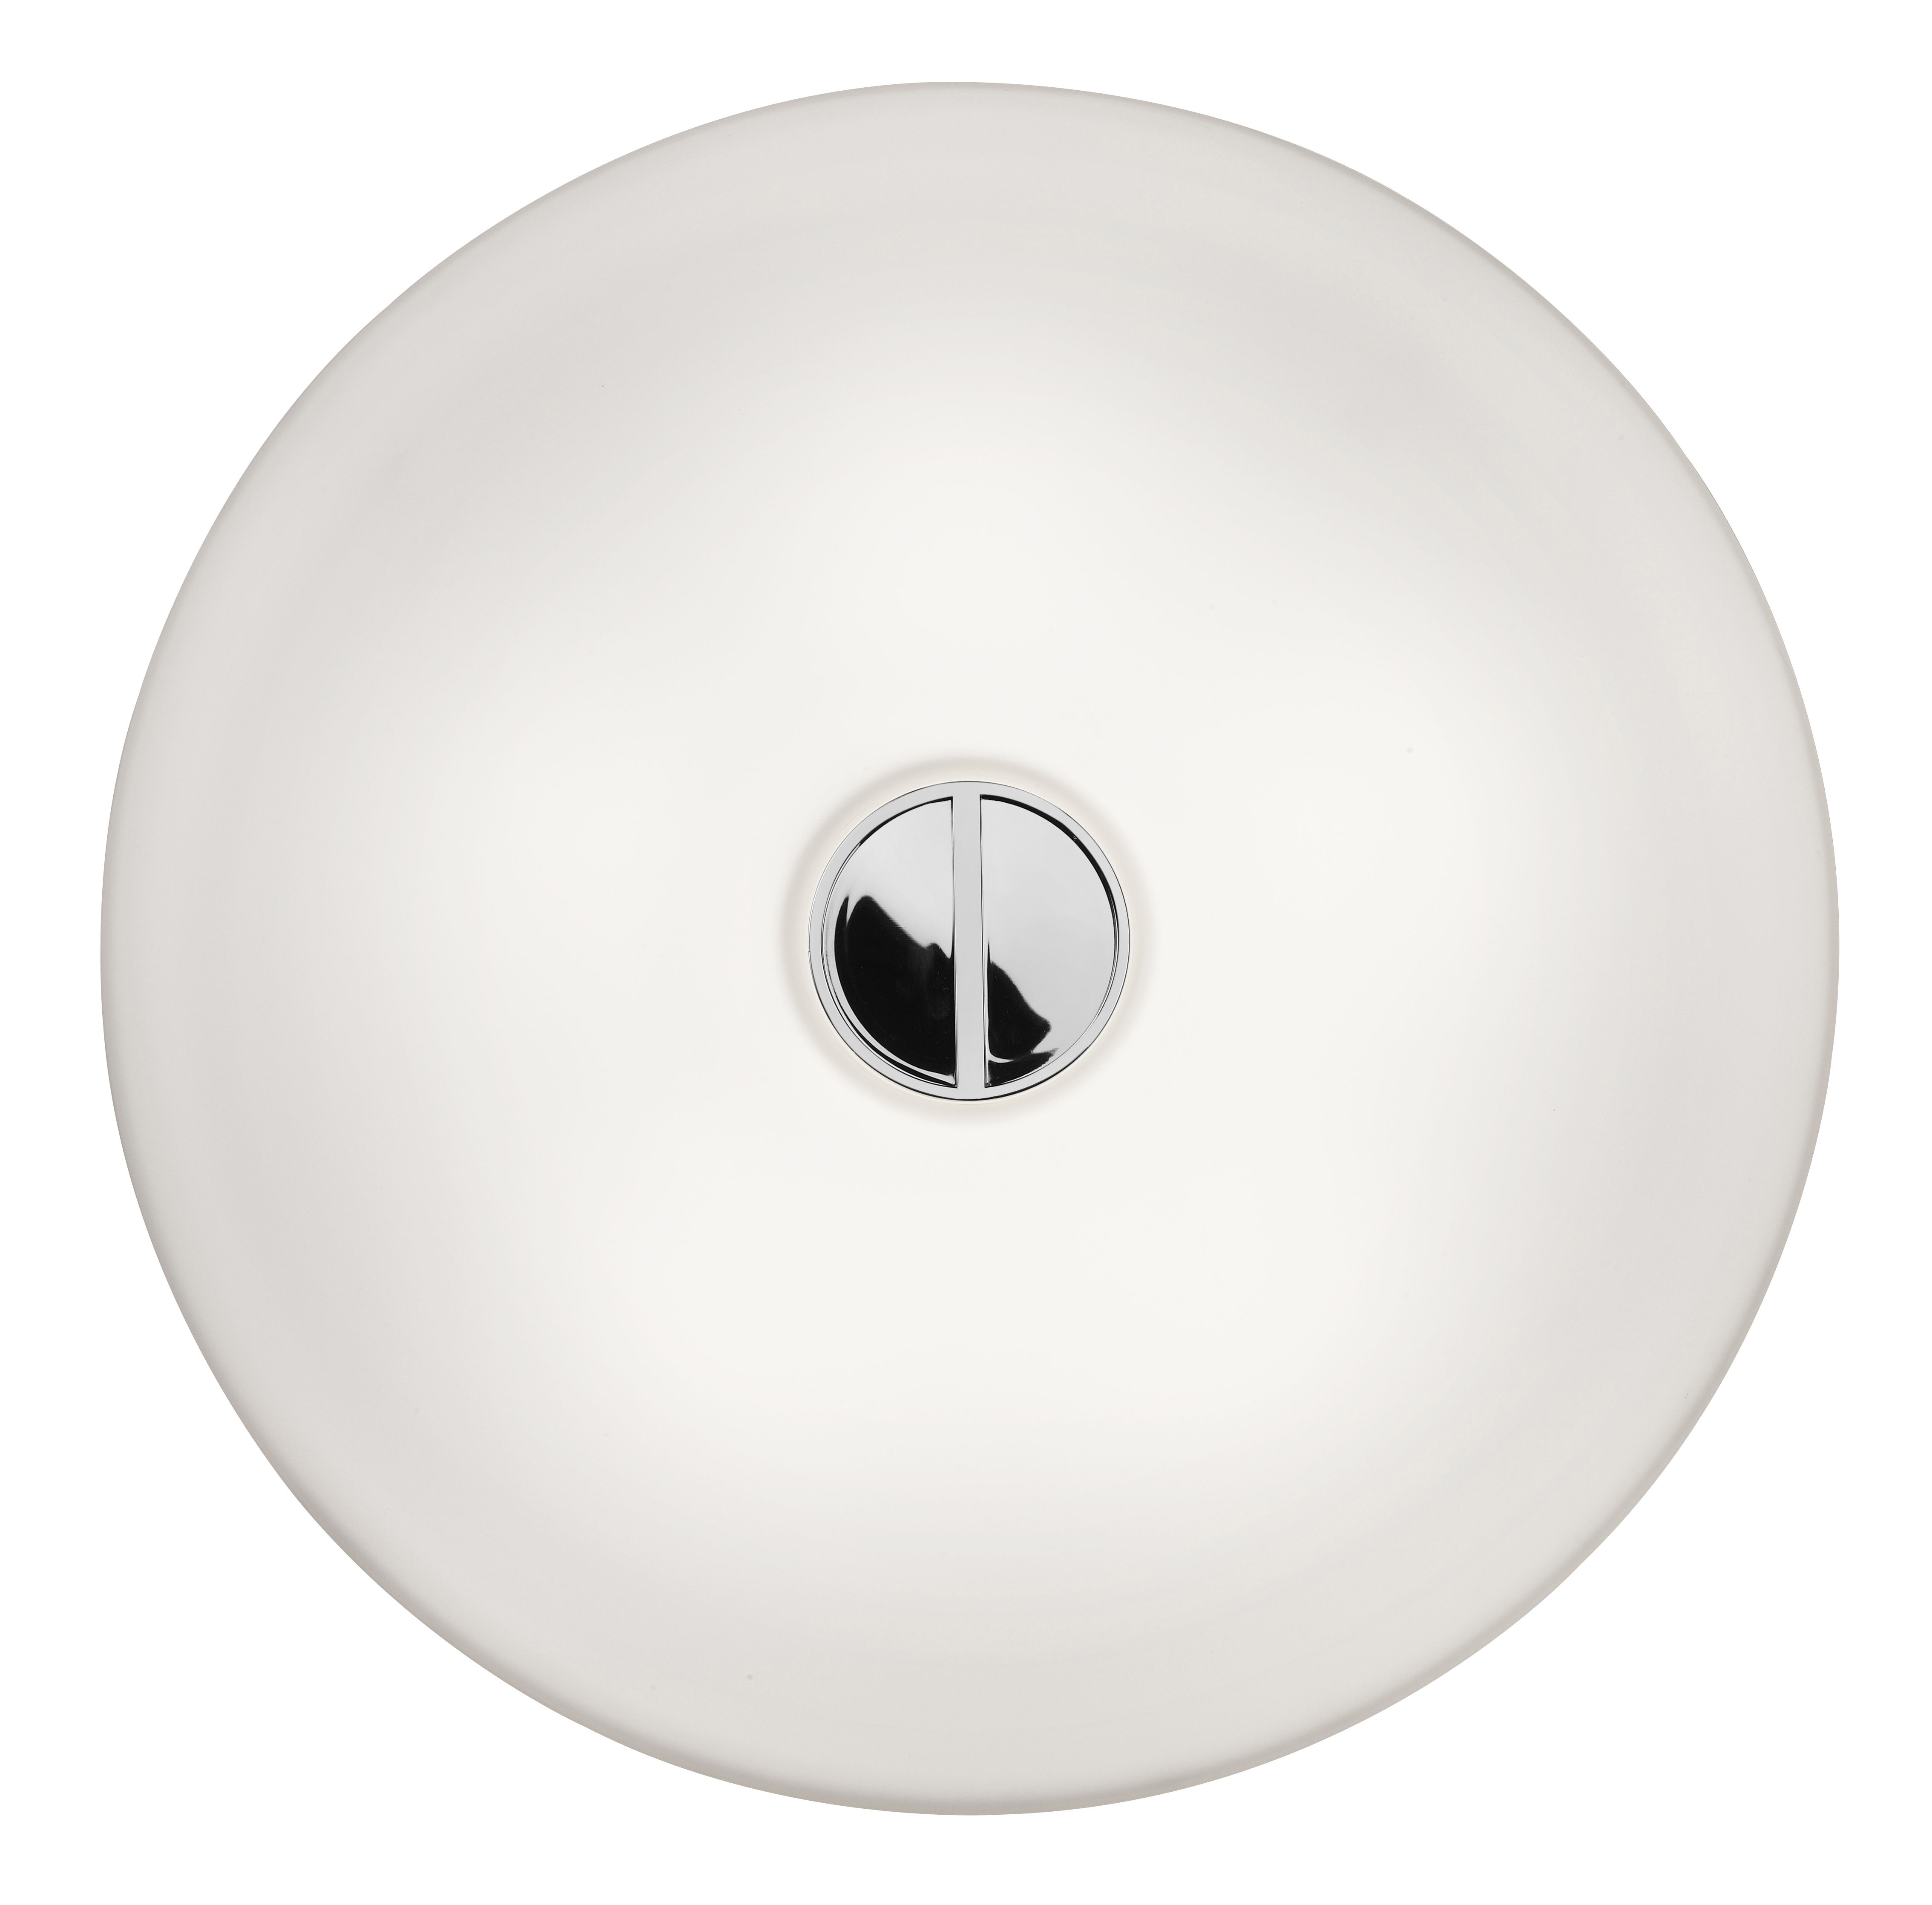 Button wall light ceiling light whitewhite by flos made in button wall light ceiling light whitewhite by flos made in design uk mozeypictures Images